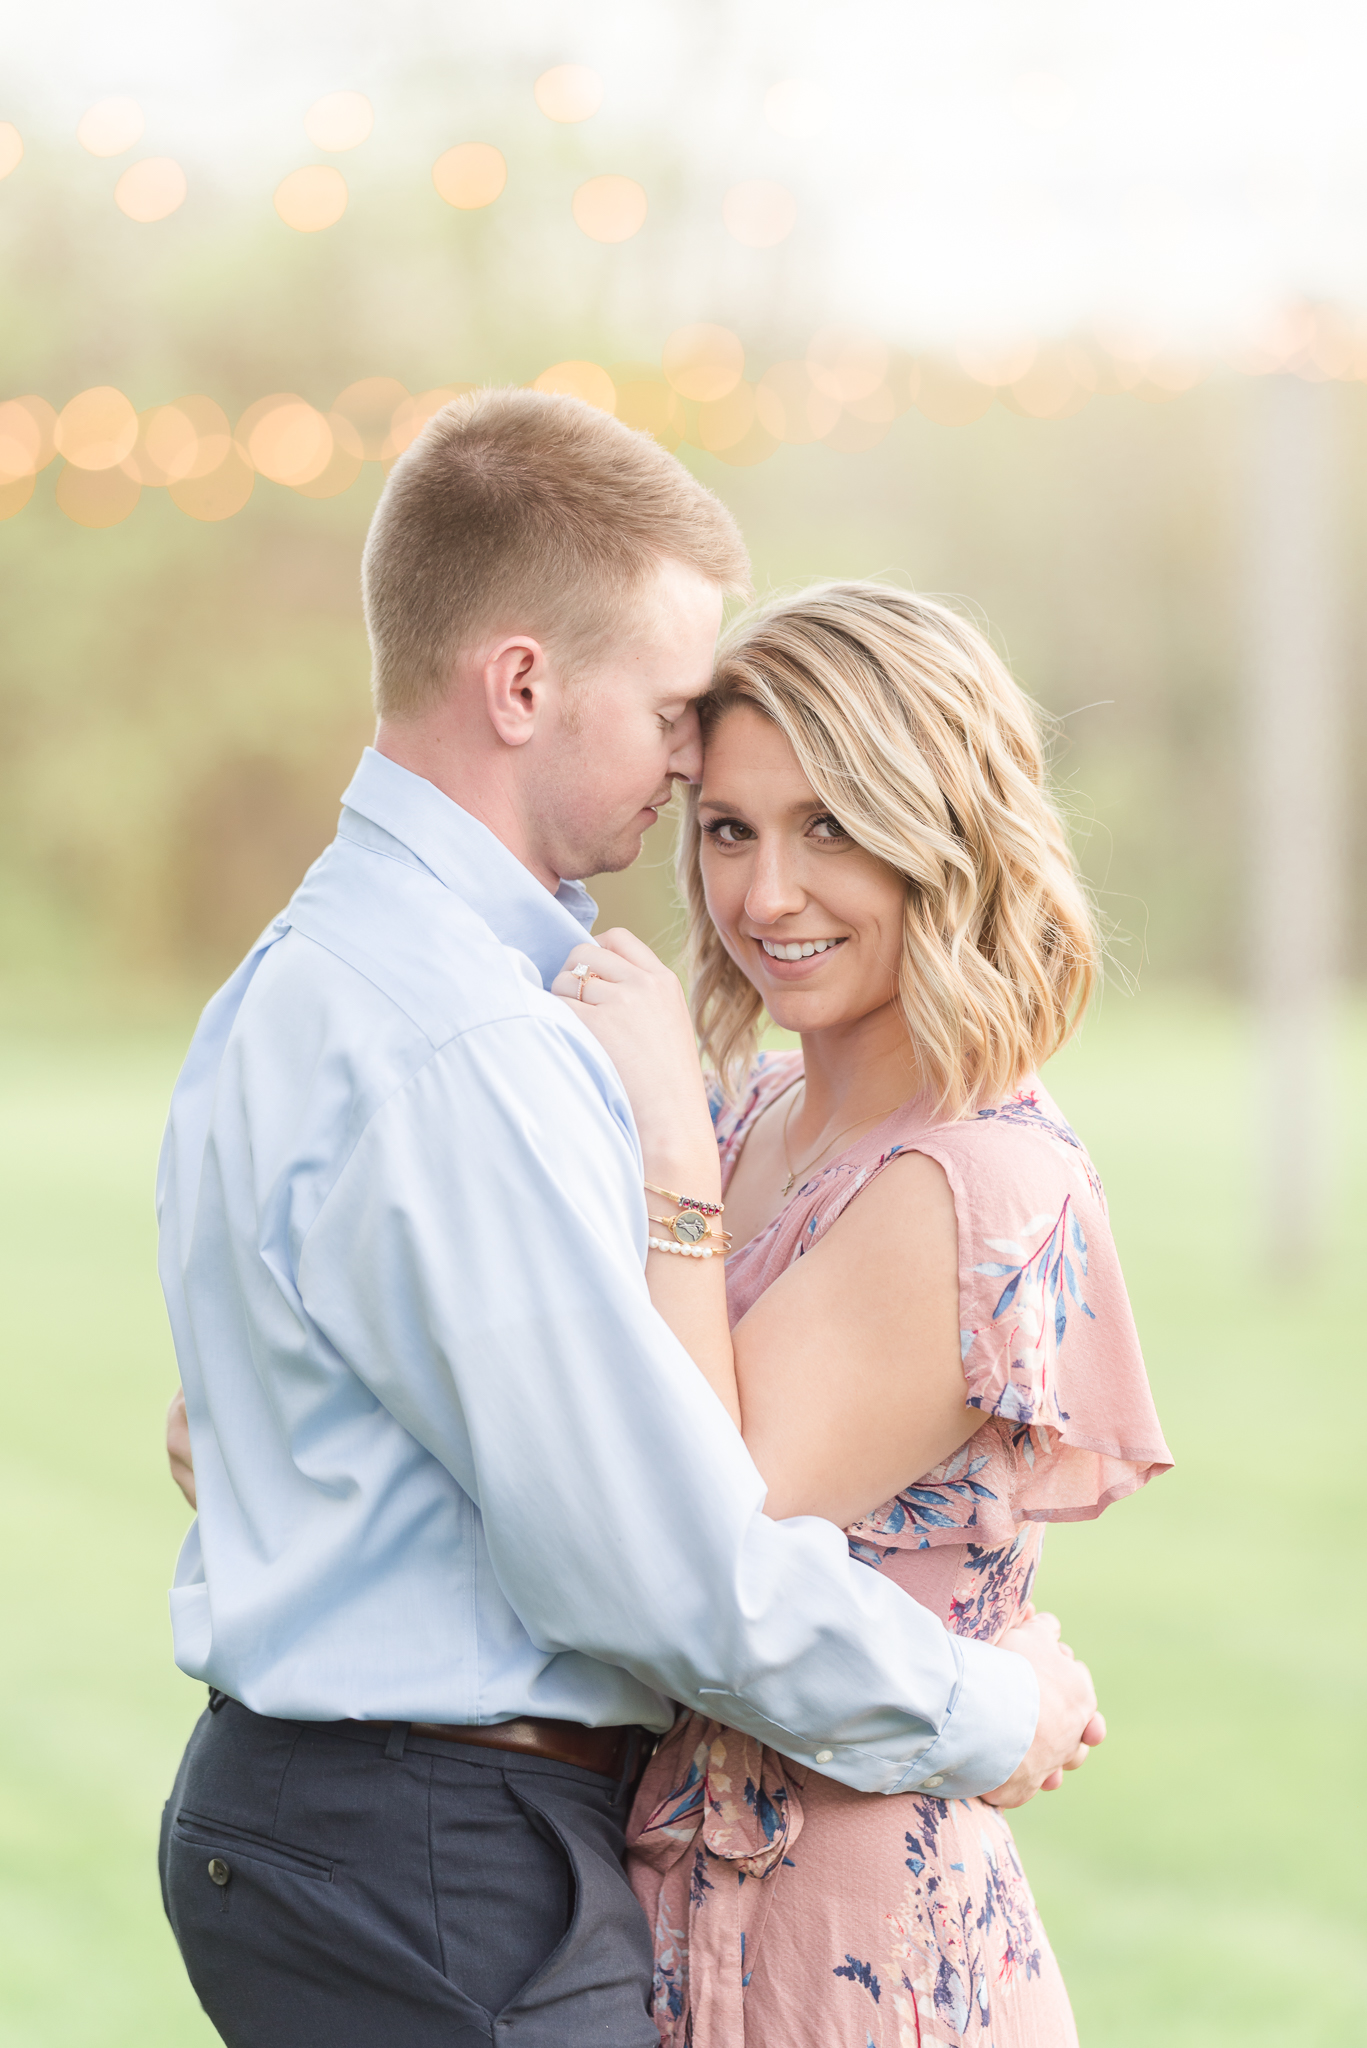 Richie Woods Nature Preserve and Mustard Seed Gardens Engagement Session Wedding Photos-41.jpg